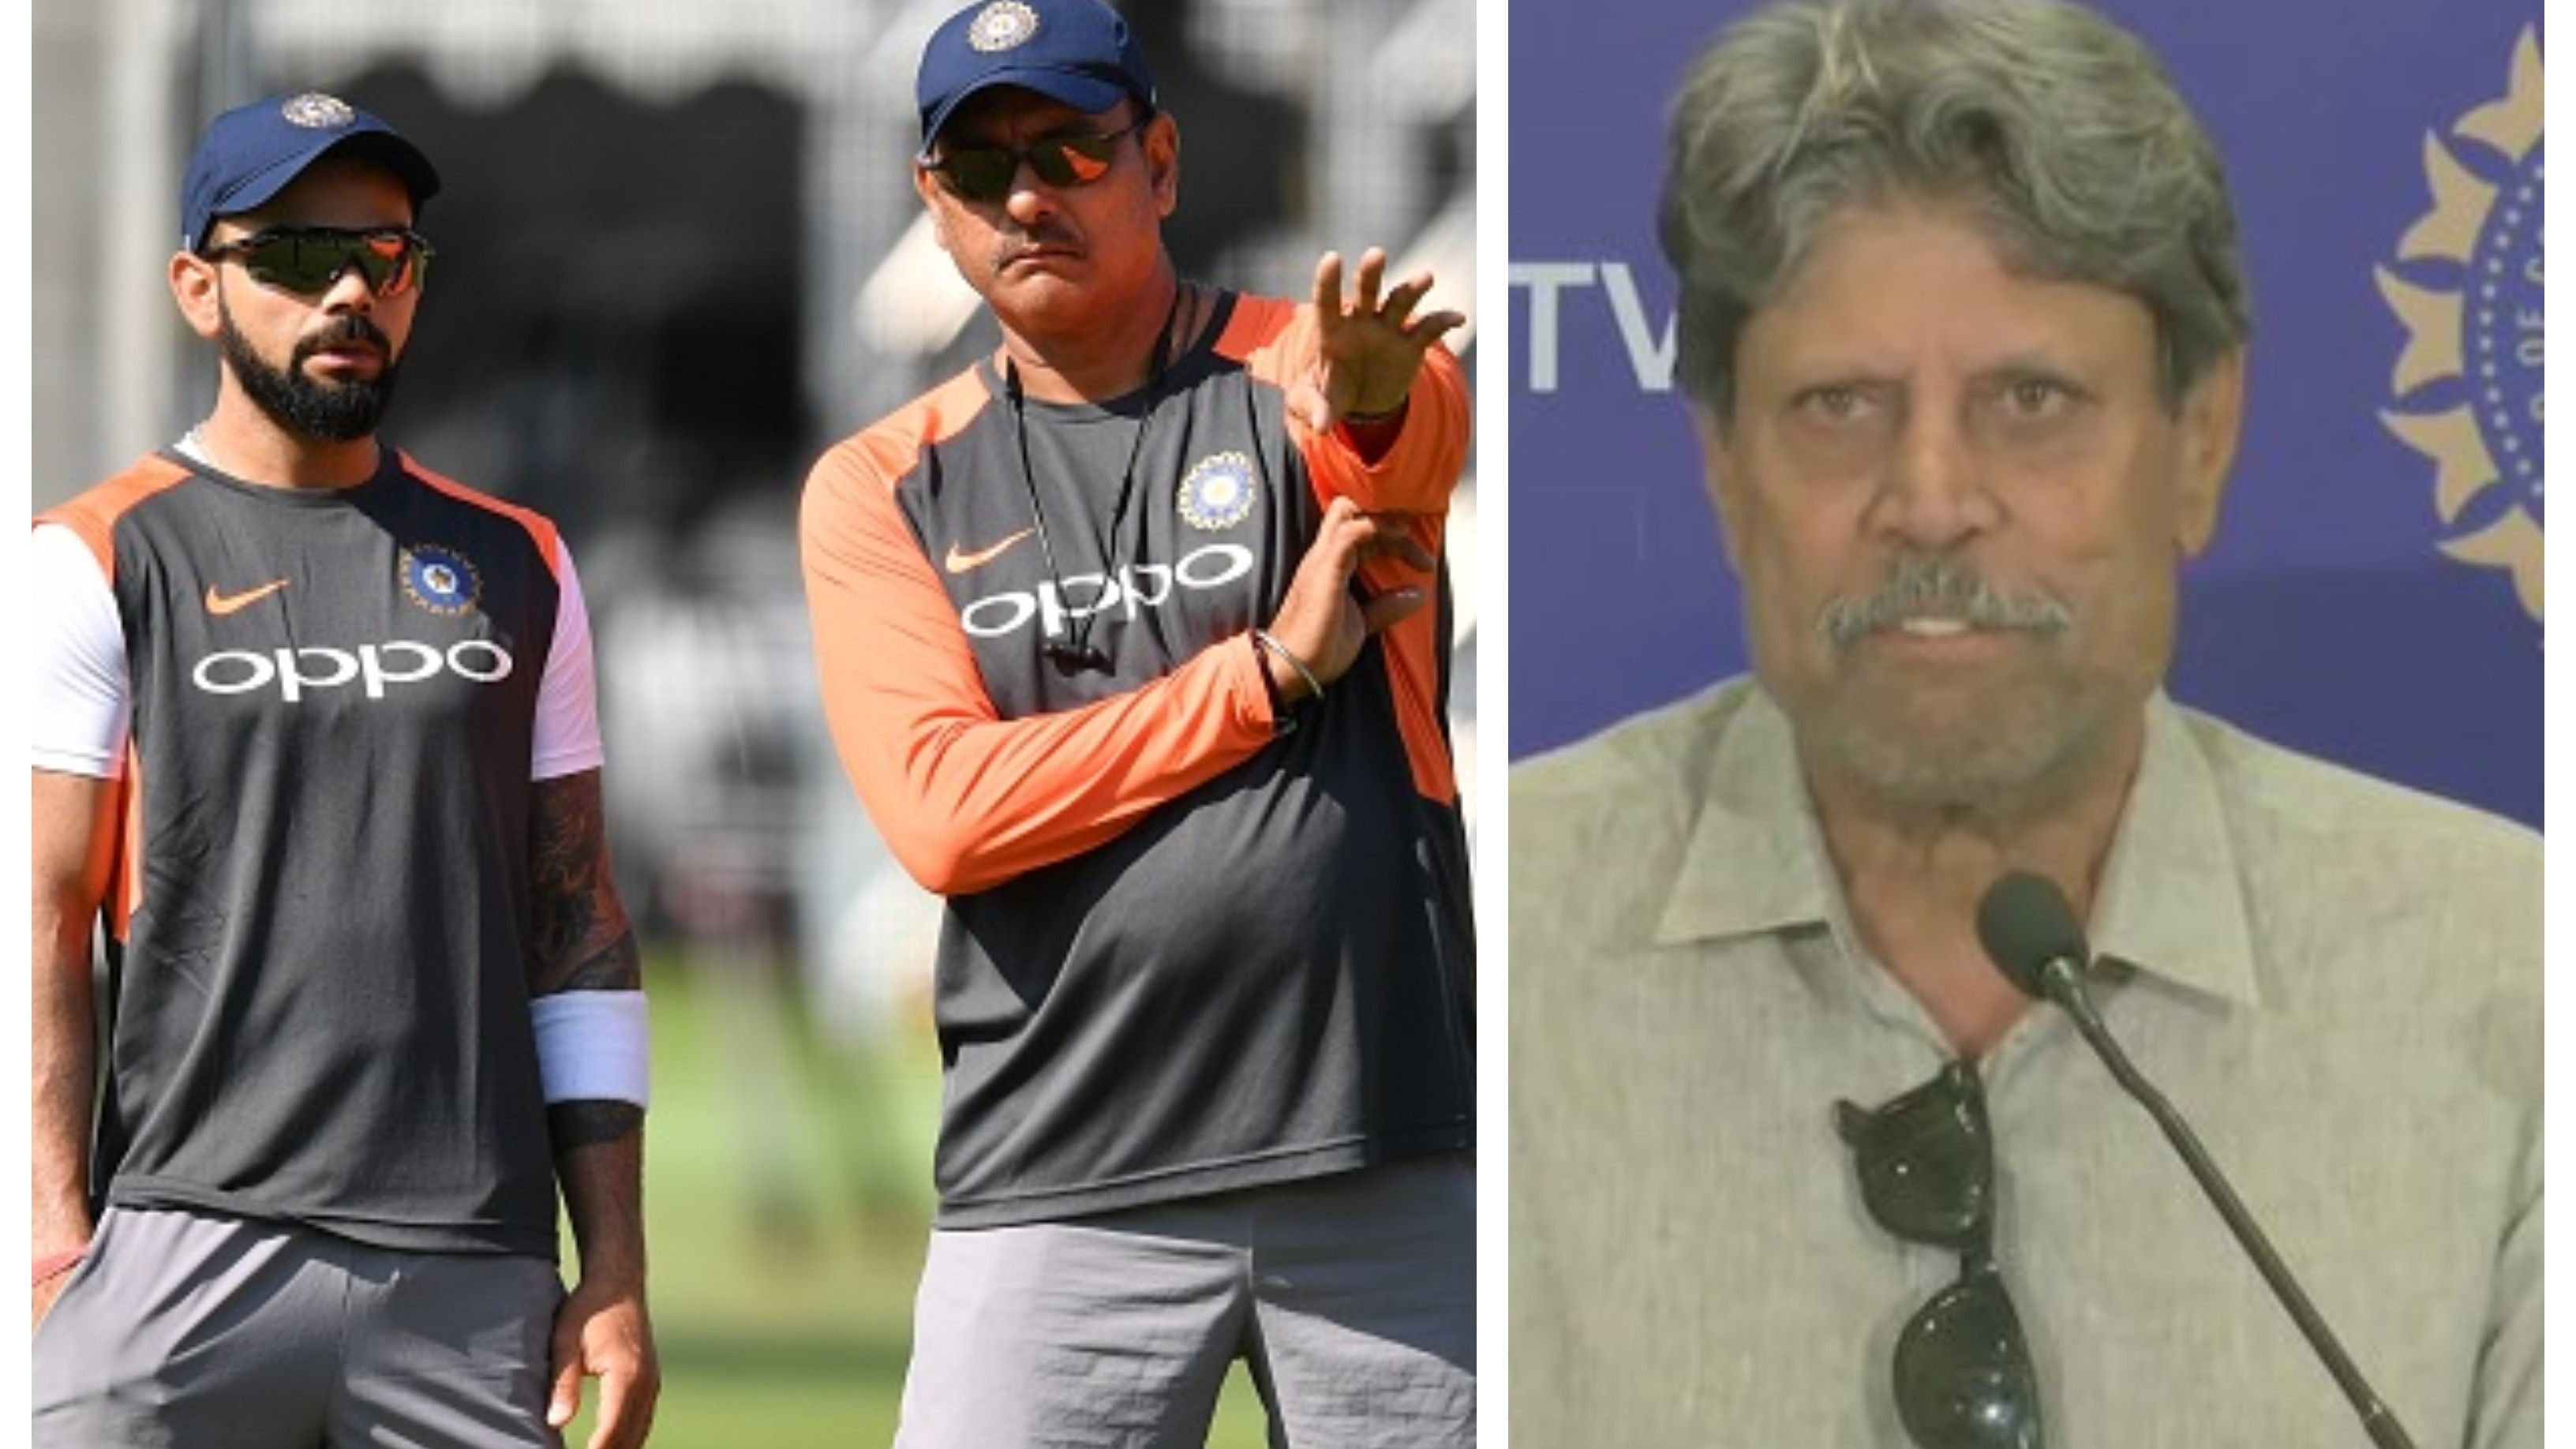 Virat Kohli was not consulted while picking Team India's head coach, says CAC chief Kapil Dev